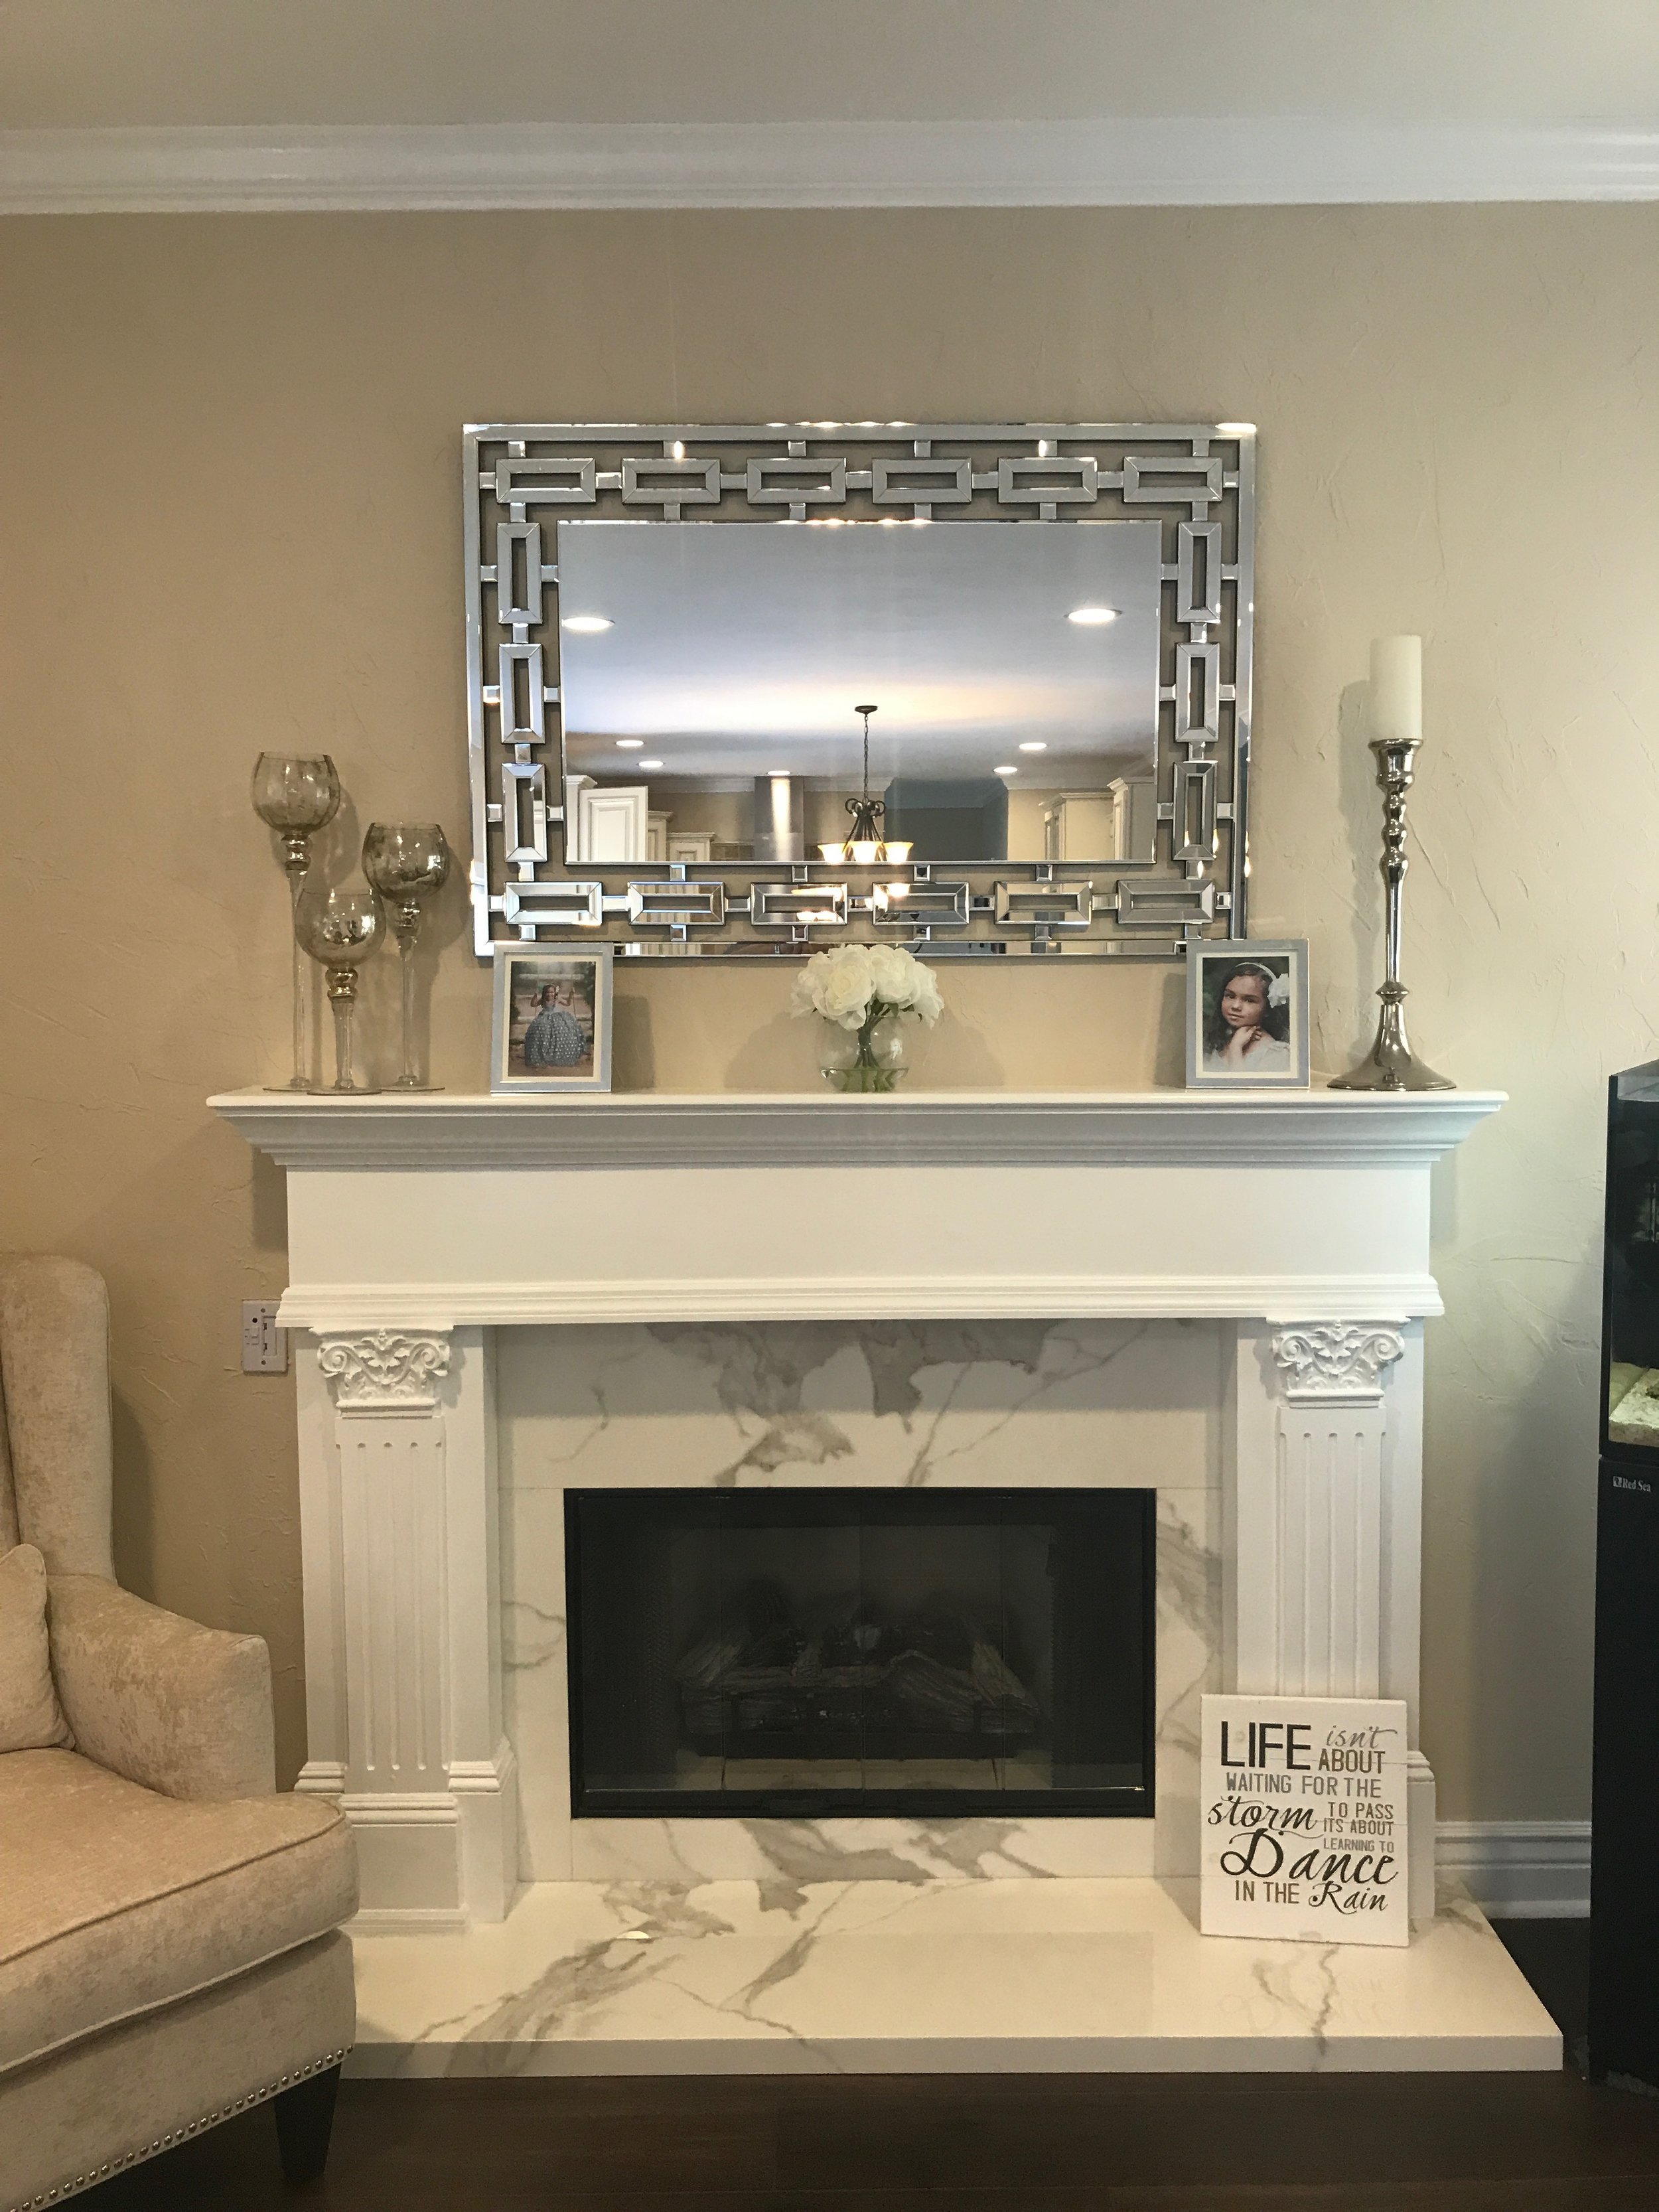 Selecting the Right Color for Your Interior Masonry Fireplace in East Northport, NY